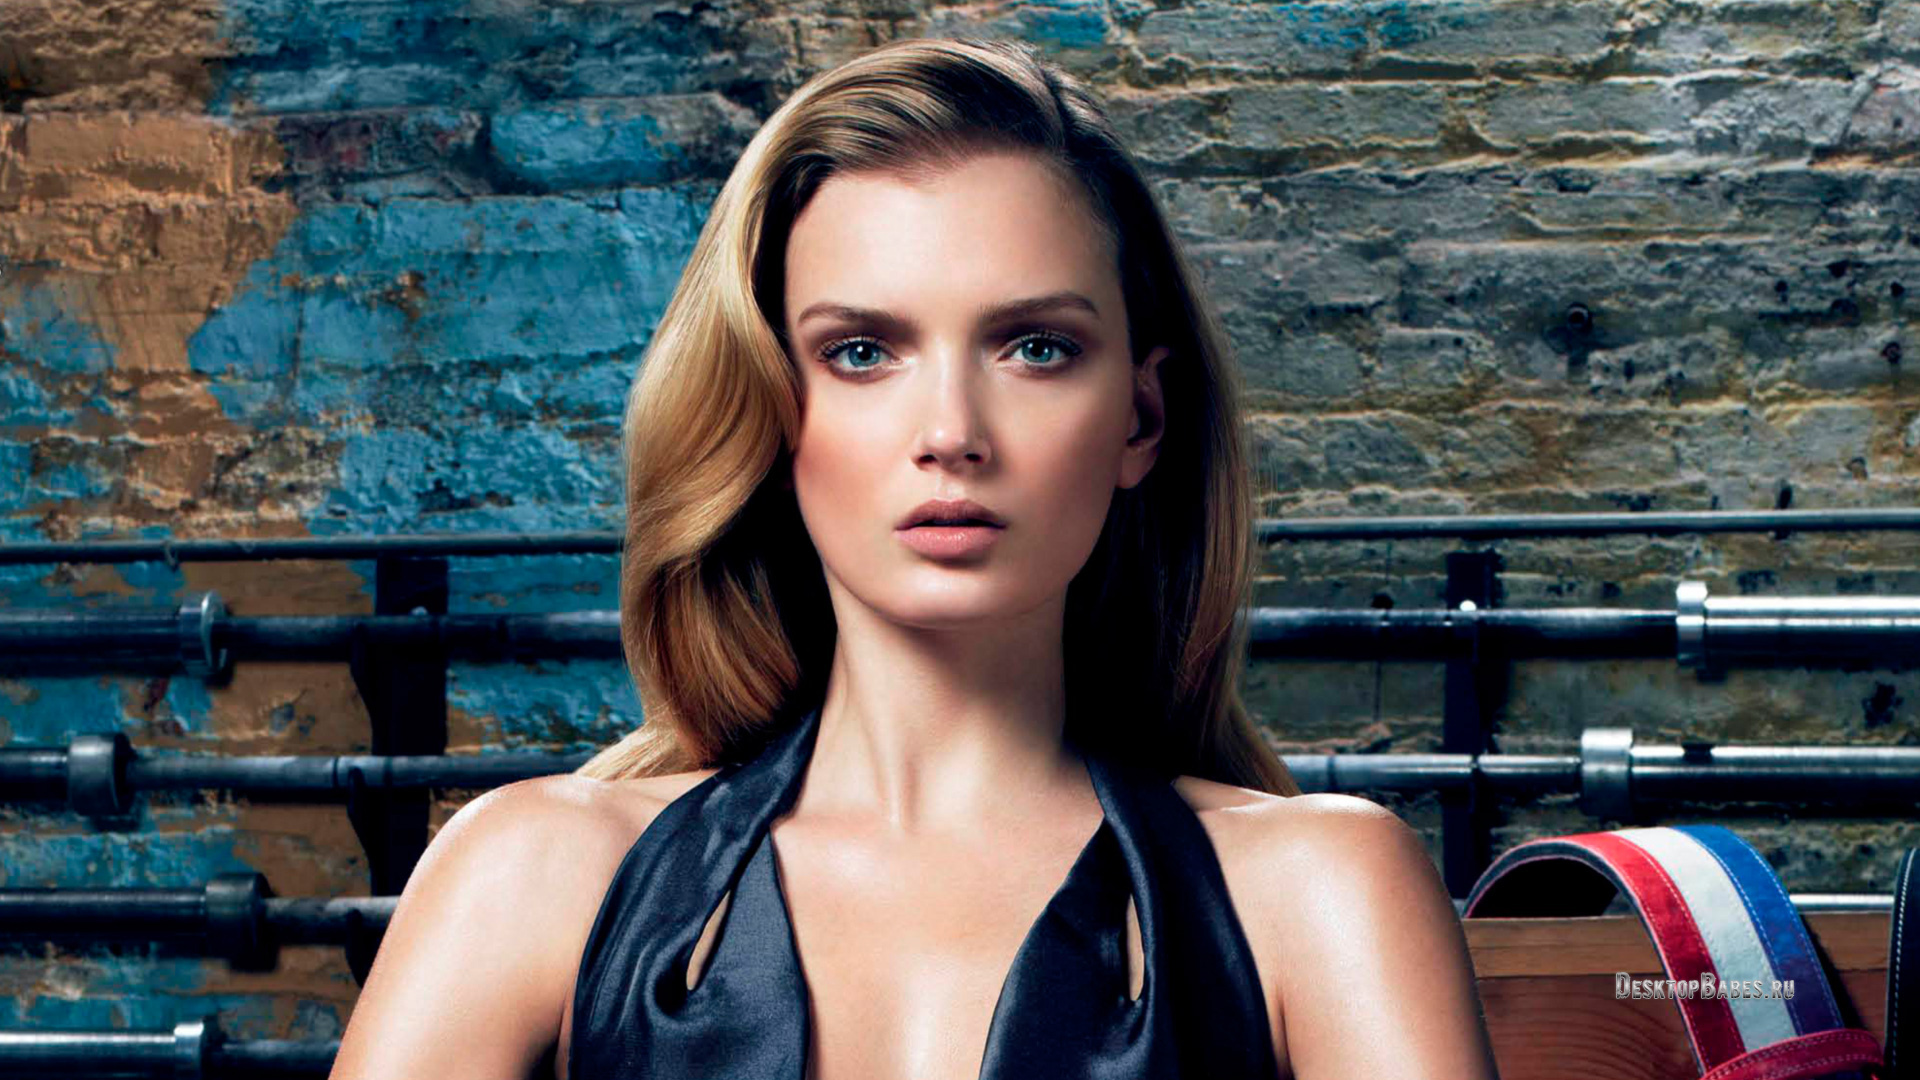 Pictures Of Lily Donaldson